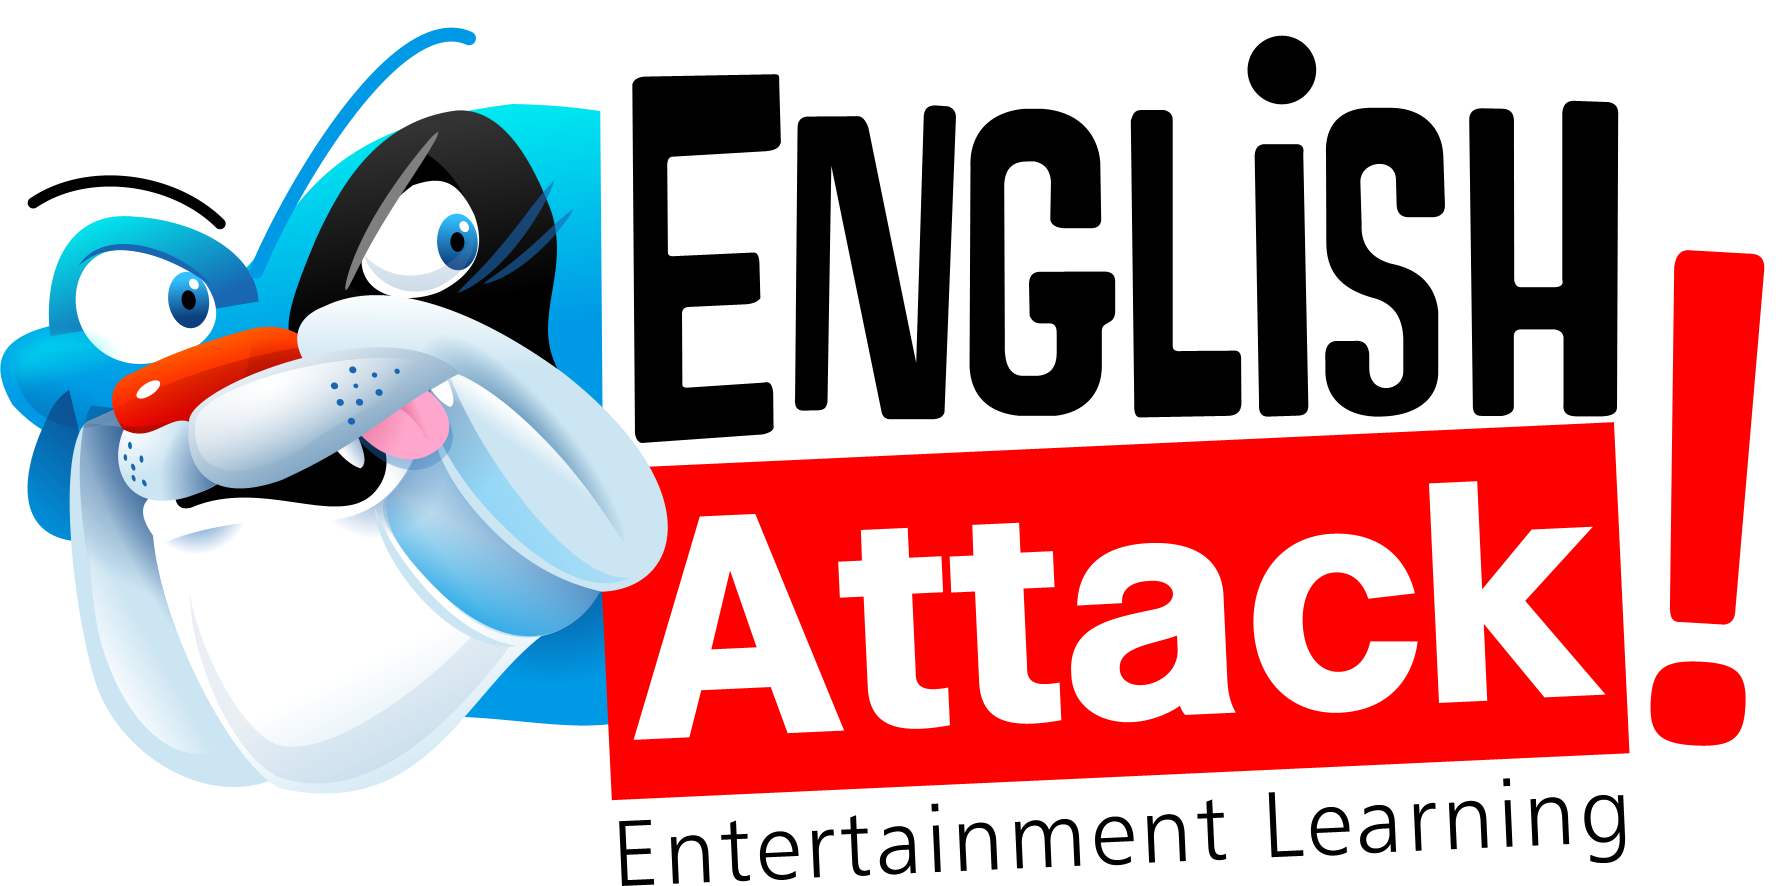 That's Edutainment! English Attack! announces open beta